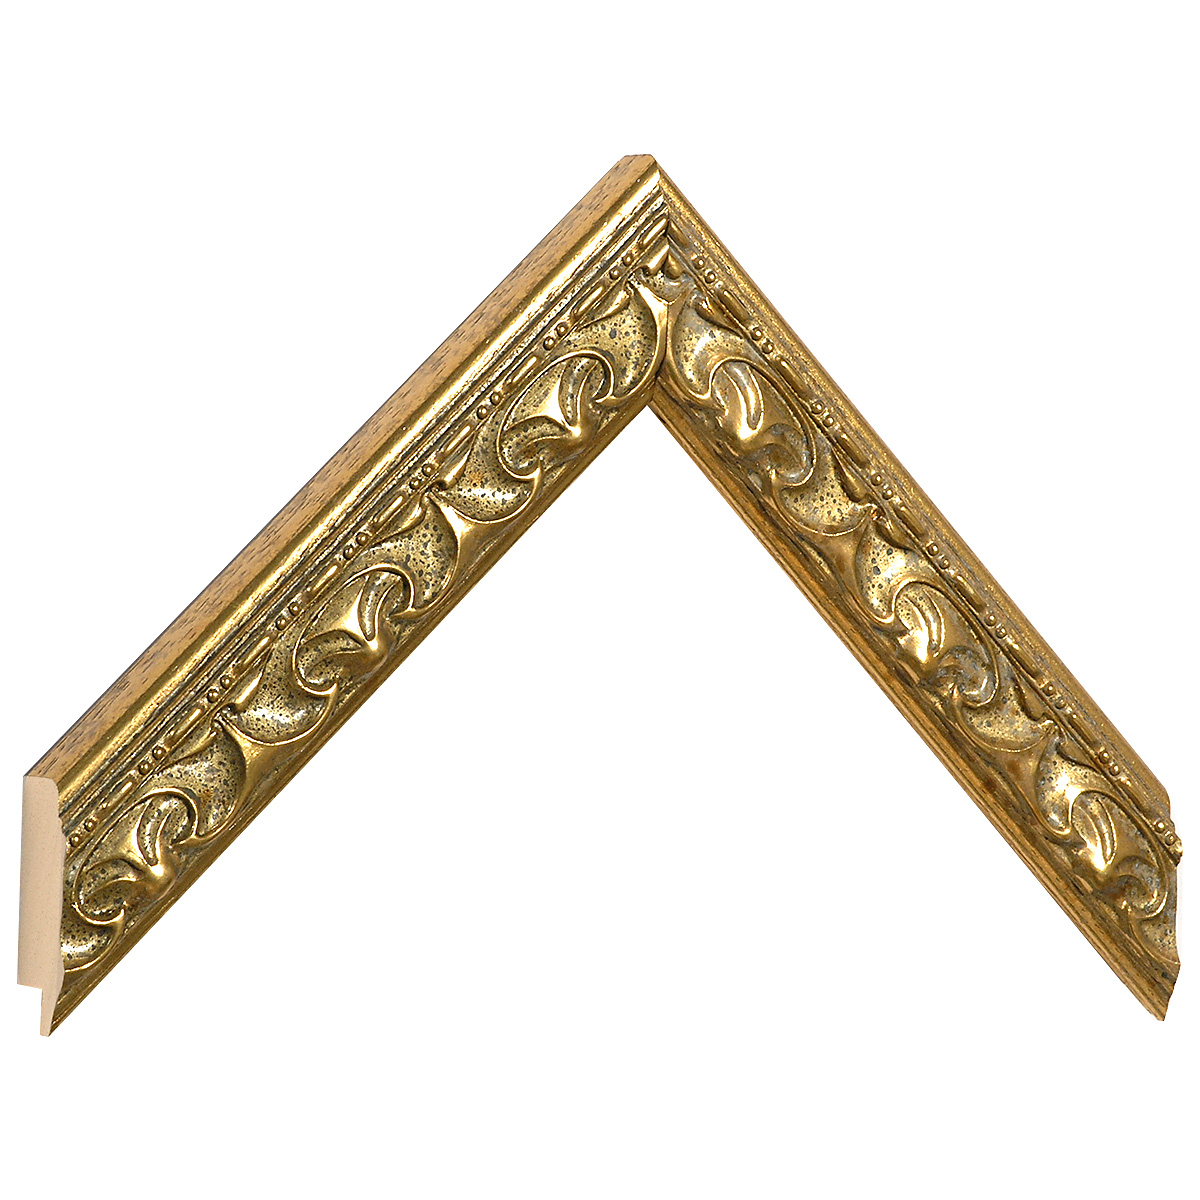 Moulding ayous gold with relief decorations